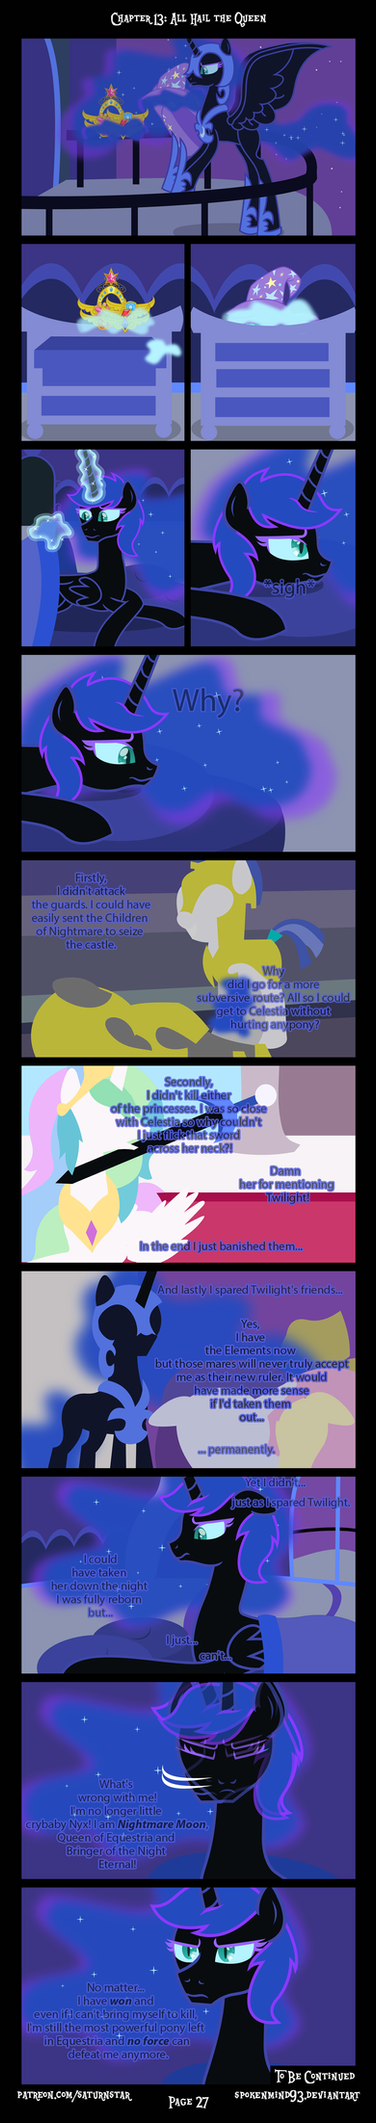 Past Sins: All Hail The Queen P27 END by SpokenMind93